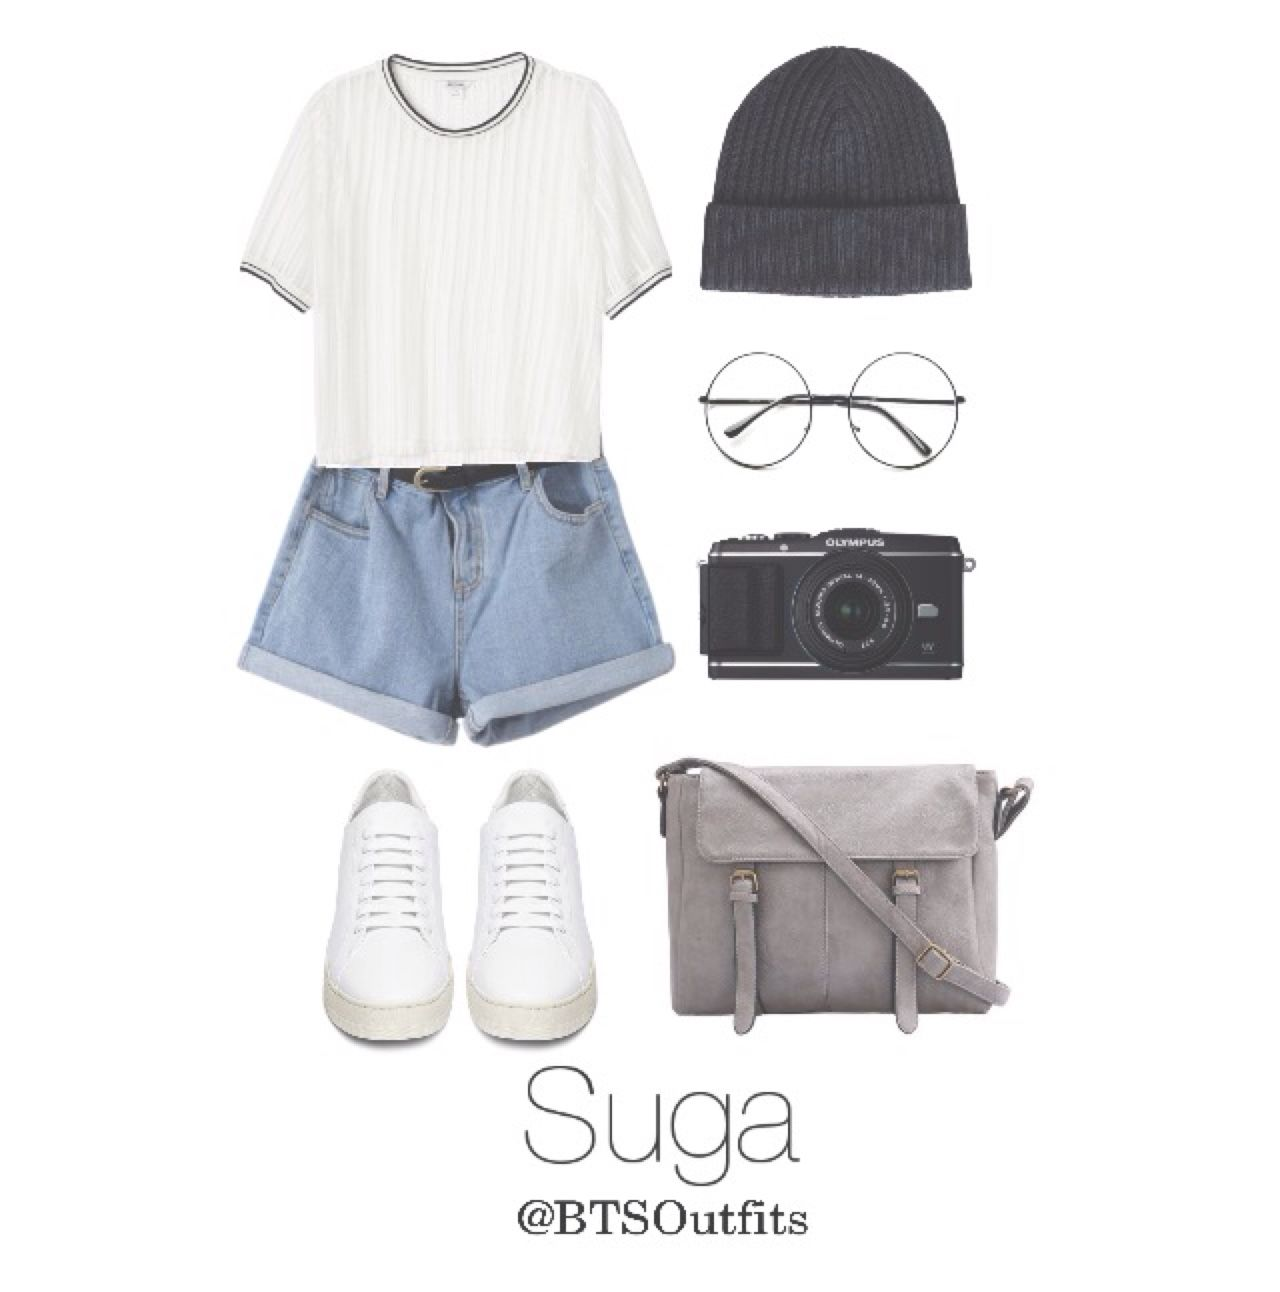 BTS Suga/Yoongi Spring outfit | Kpop inspired outfits | Pinterest | BTS and Spring